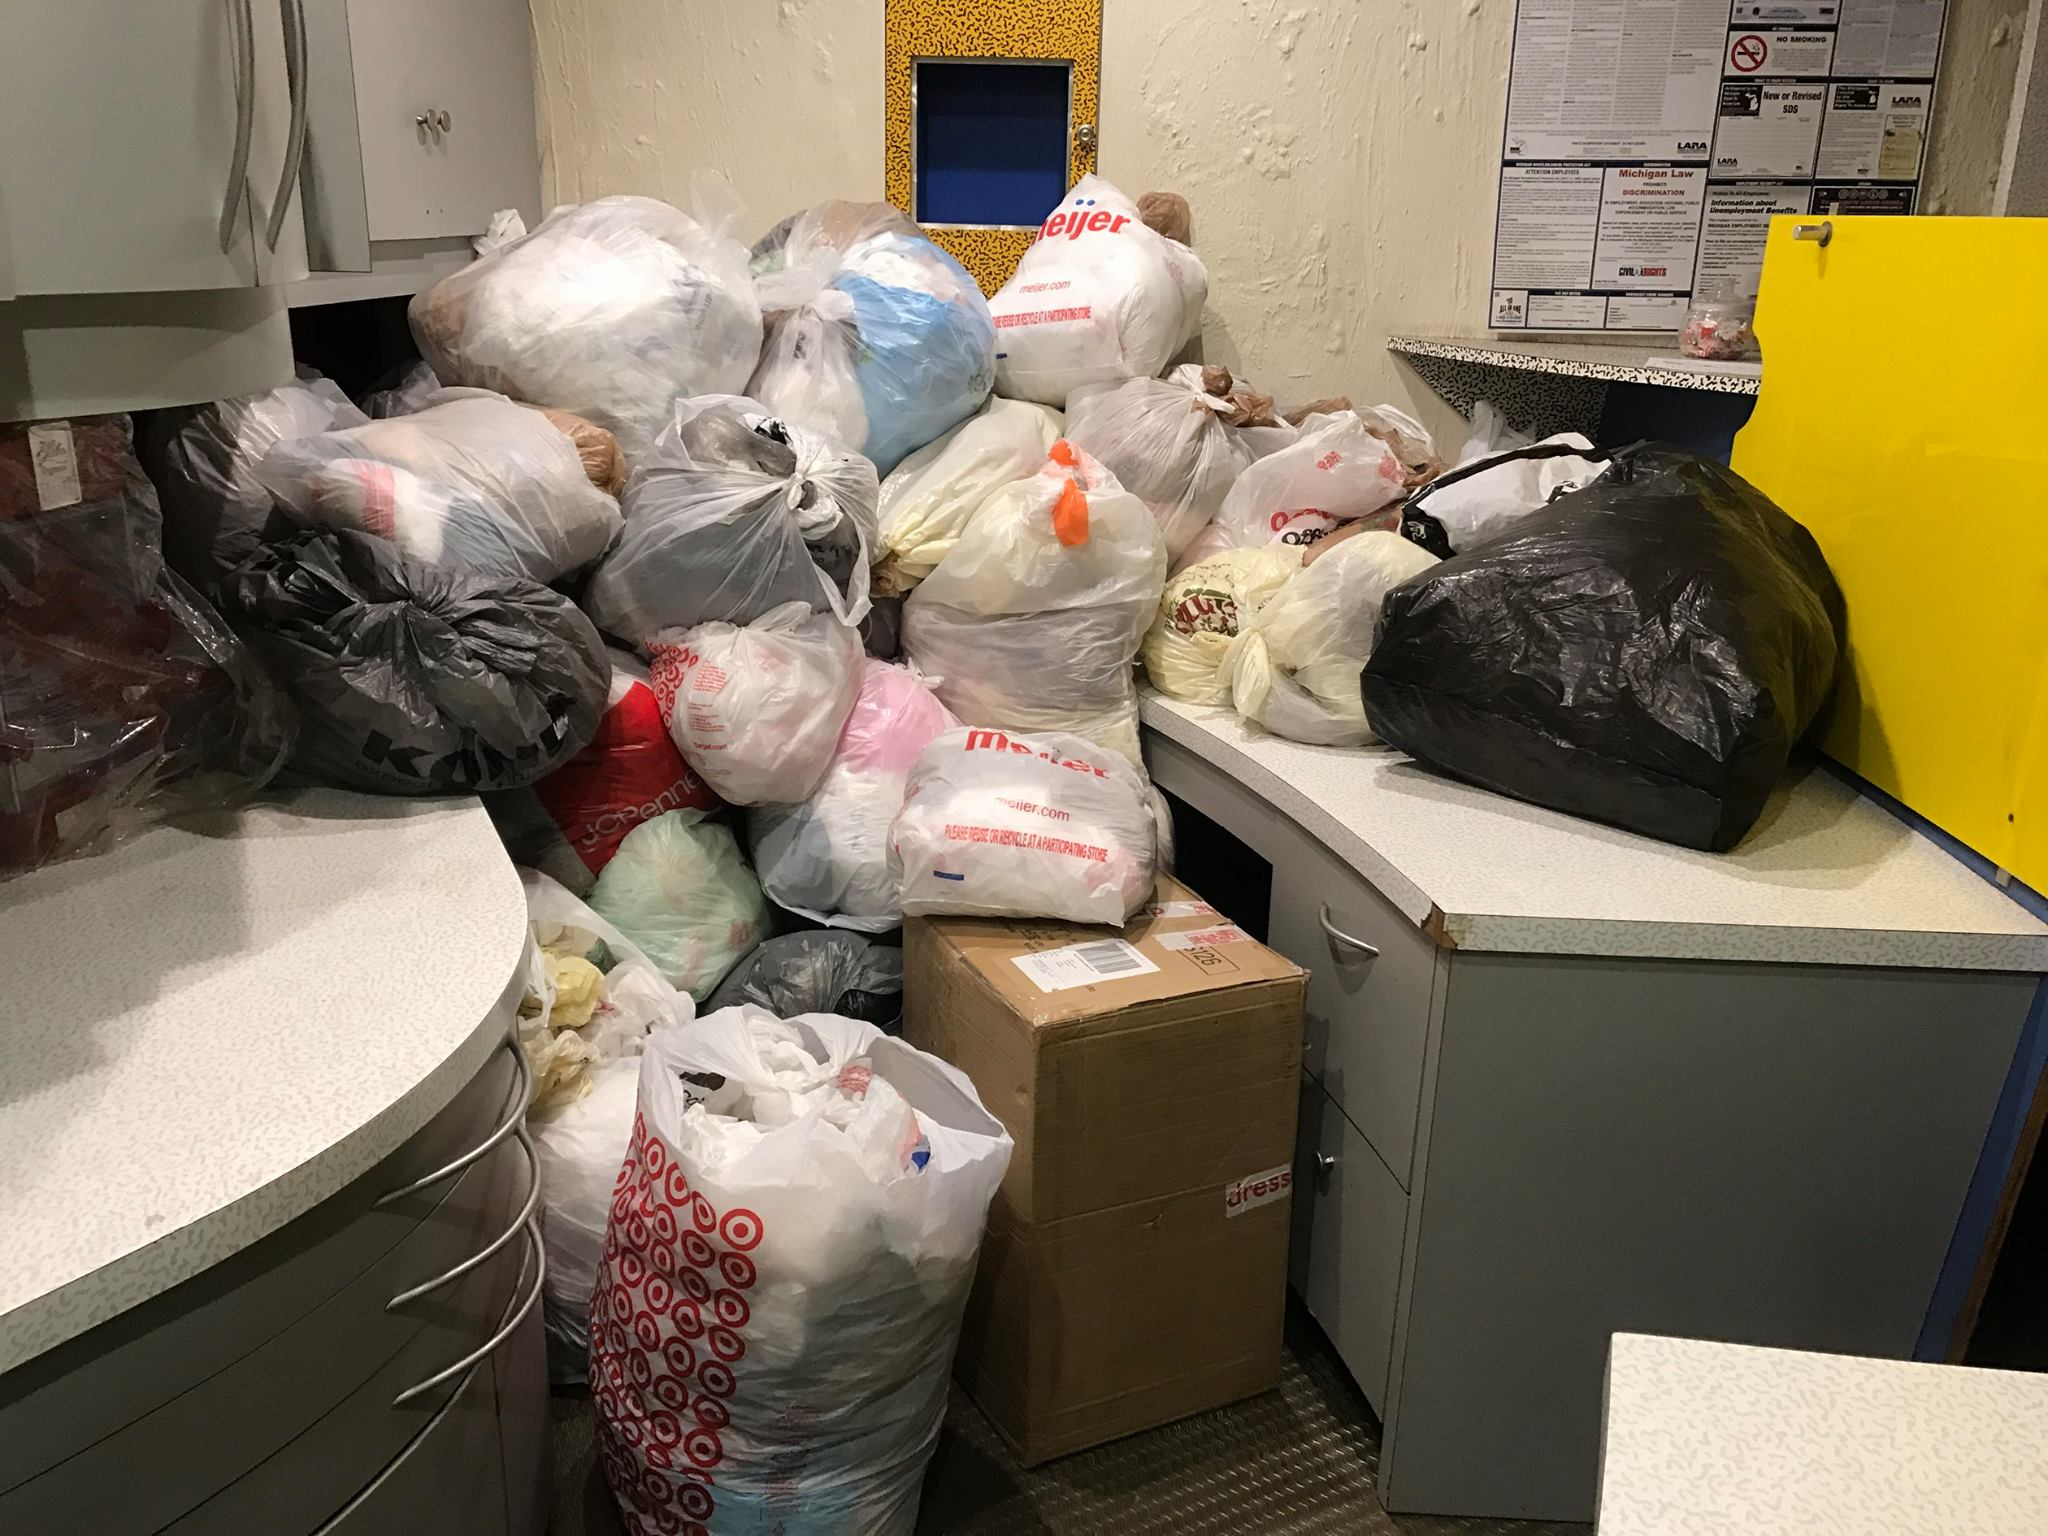 2017 Haven's Place Grocery Bag Collection for Making Homeless Mats